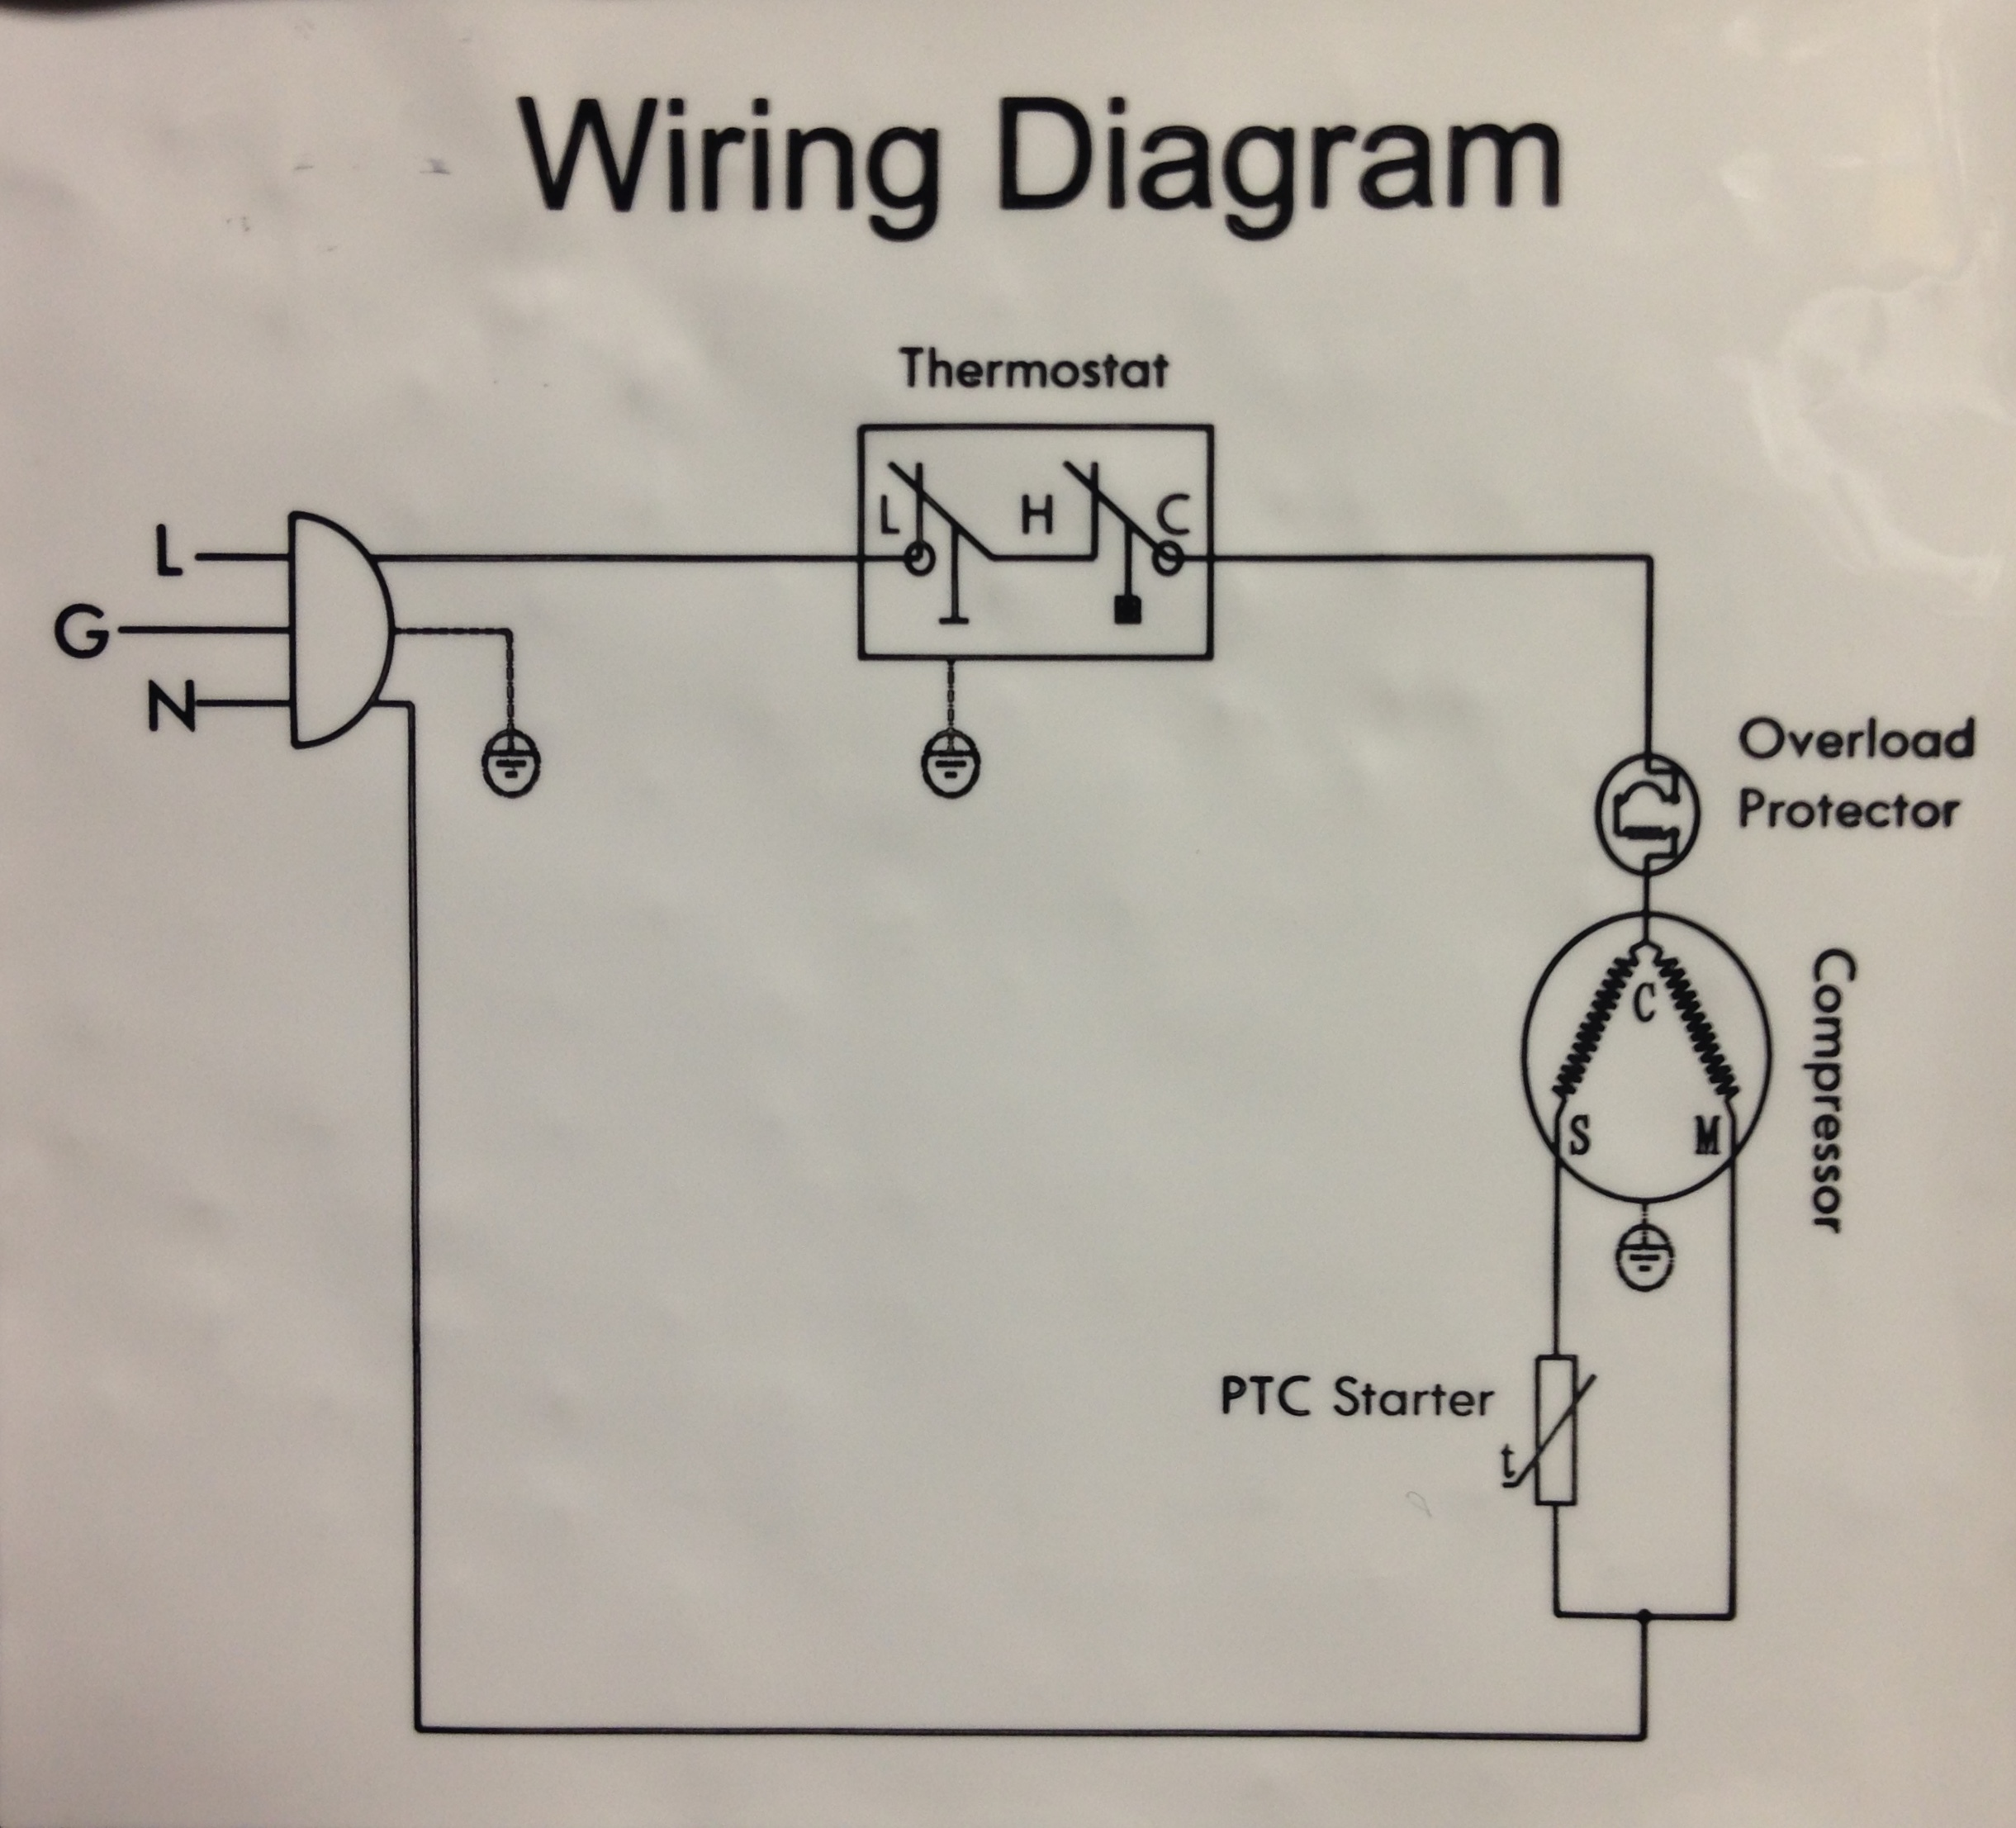 c5986337b4249150884d4e057ccb08b32fe4028e new build electronics newb diagram help fridge build brewpi mini fridge thermostat wiring diagram at gsmx.co